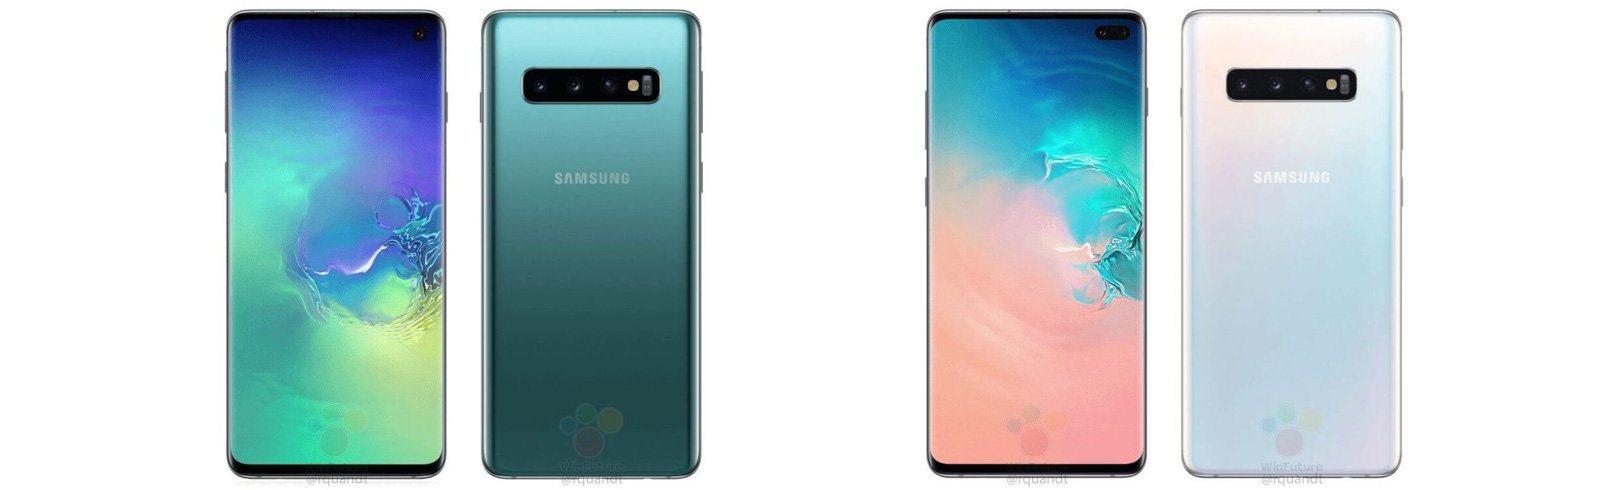 Samsung Galaxy S10 series prices and renders leak